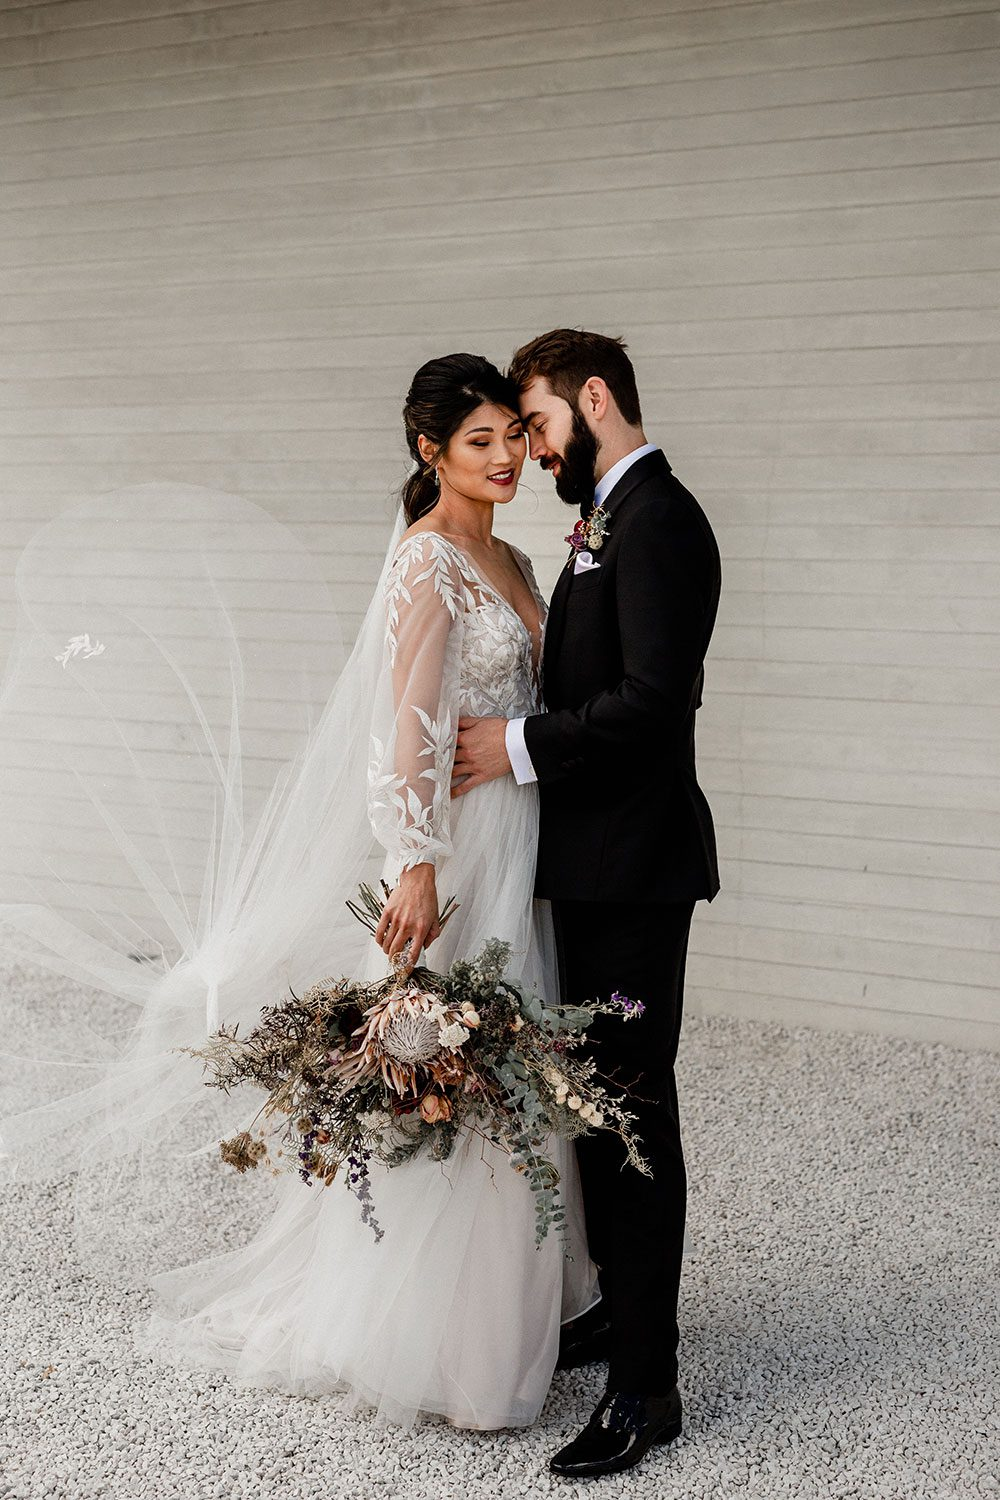 Bride wearing bespoke designer wedding dress by Vinka Bridal Boutique NZ, adorned with delicate applique lace and puffed sleeves - embrace at wall with groom